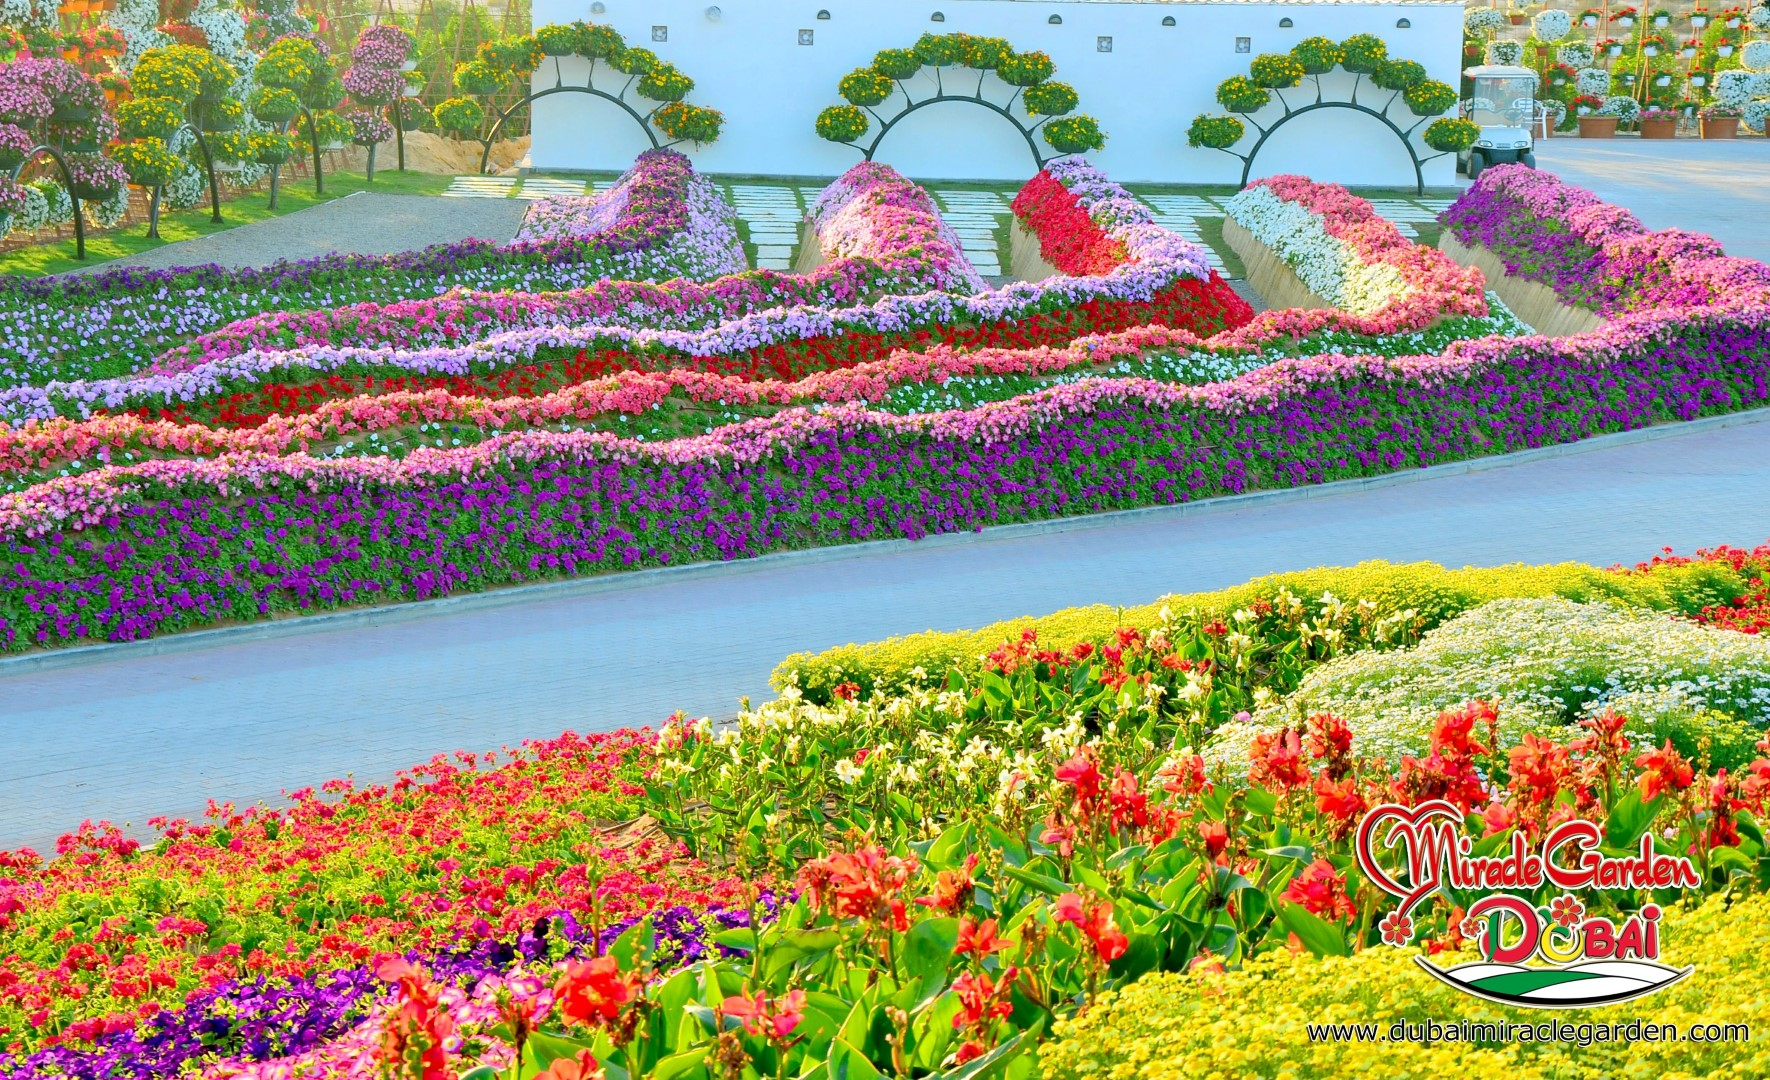 Dubai miracle garden the world 39 s biggest natural flower for Flowers landscape gardening